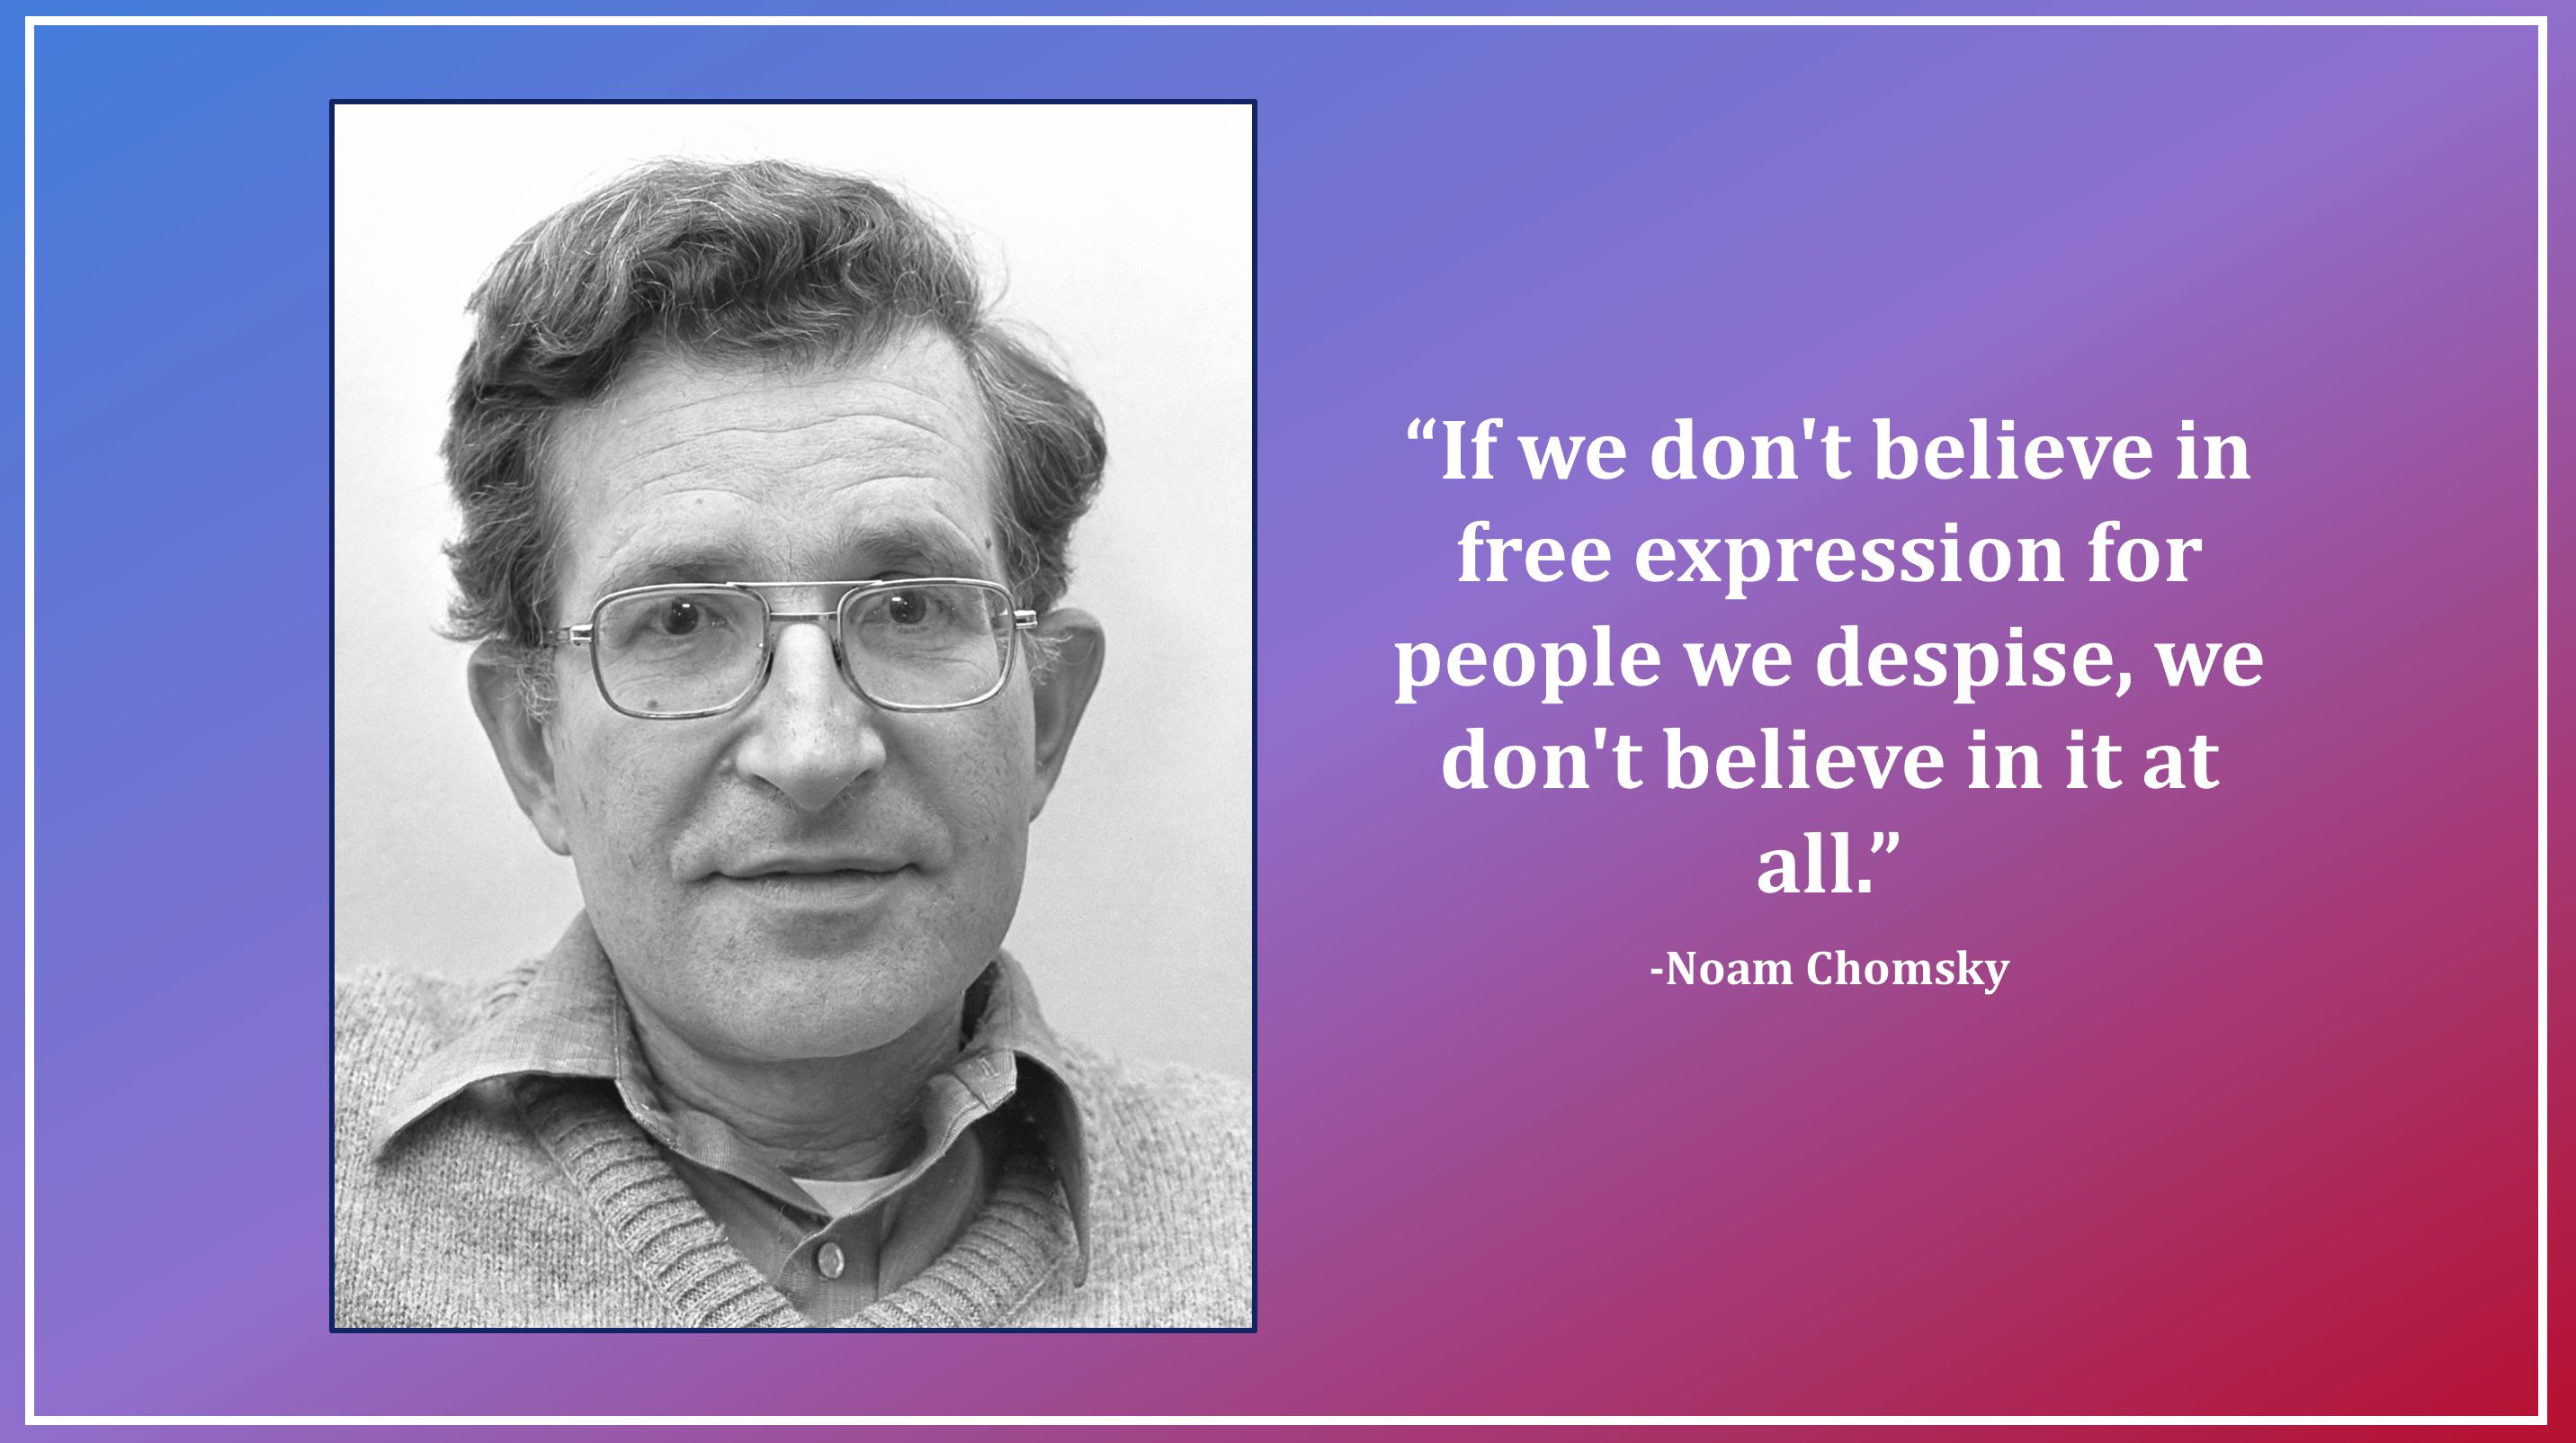 """If we don't believe in free expression for people we despise, we don't believe in it at all."" -Noam Chomsky [2864×1604]"